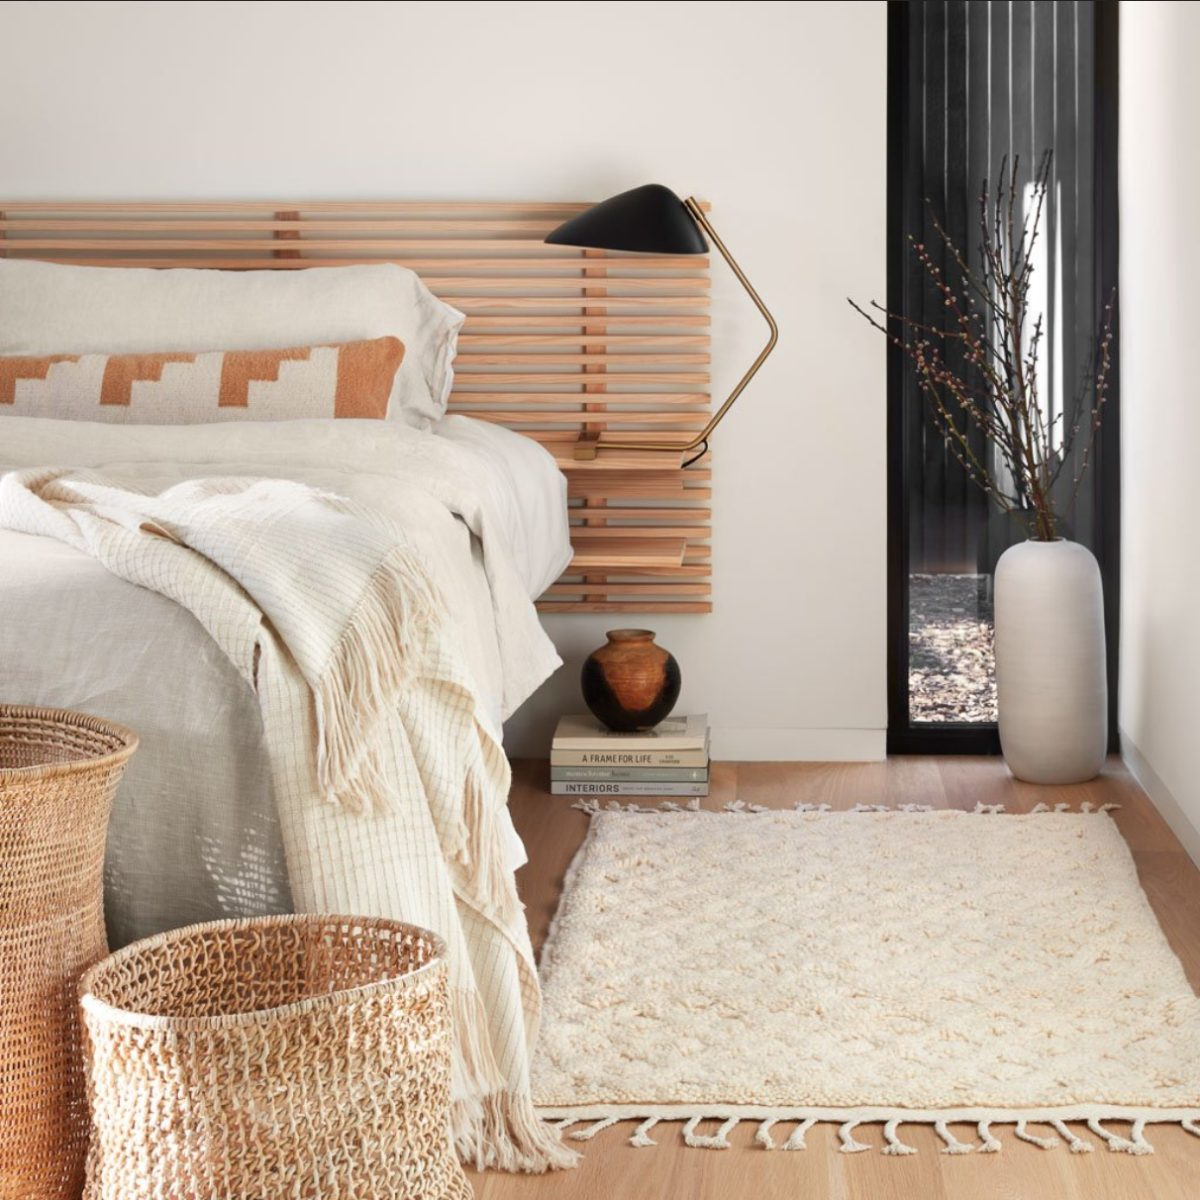 Ethical Home Styling. 8 Home Decor Brands to Naturally Enhance Your Home